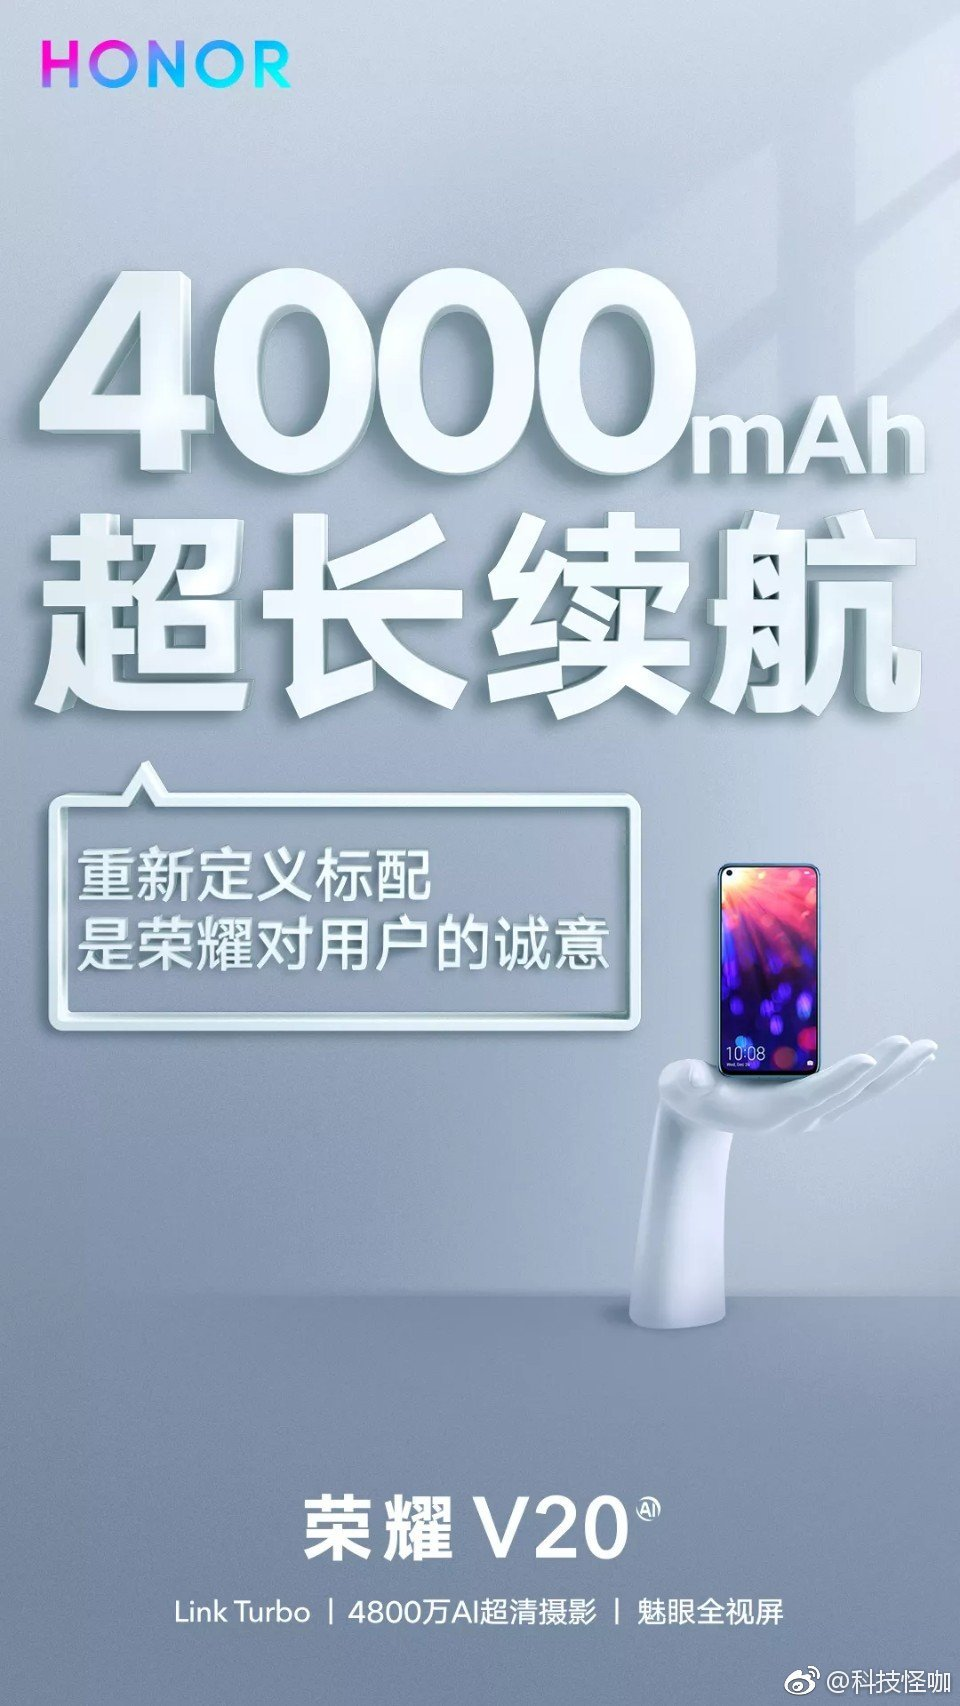 Honor V20 Promotional Materials